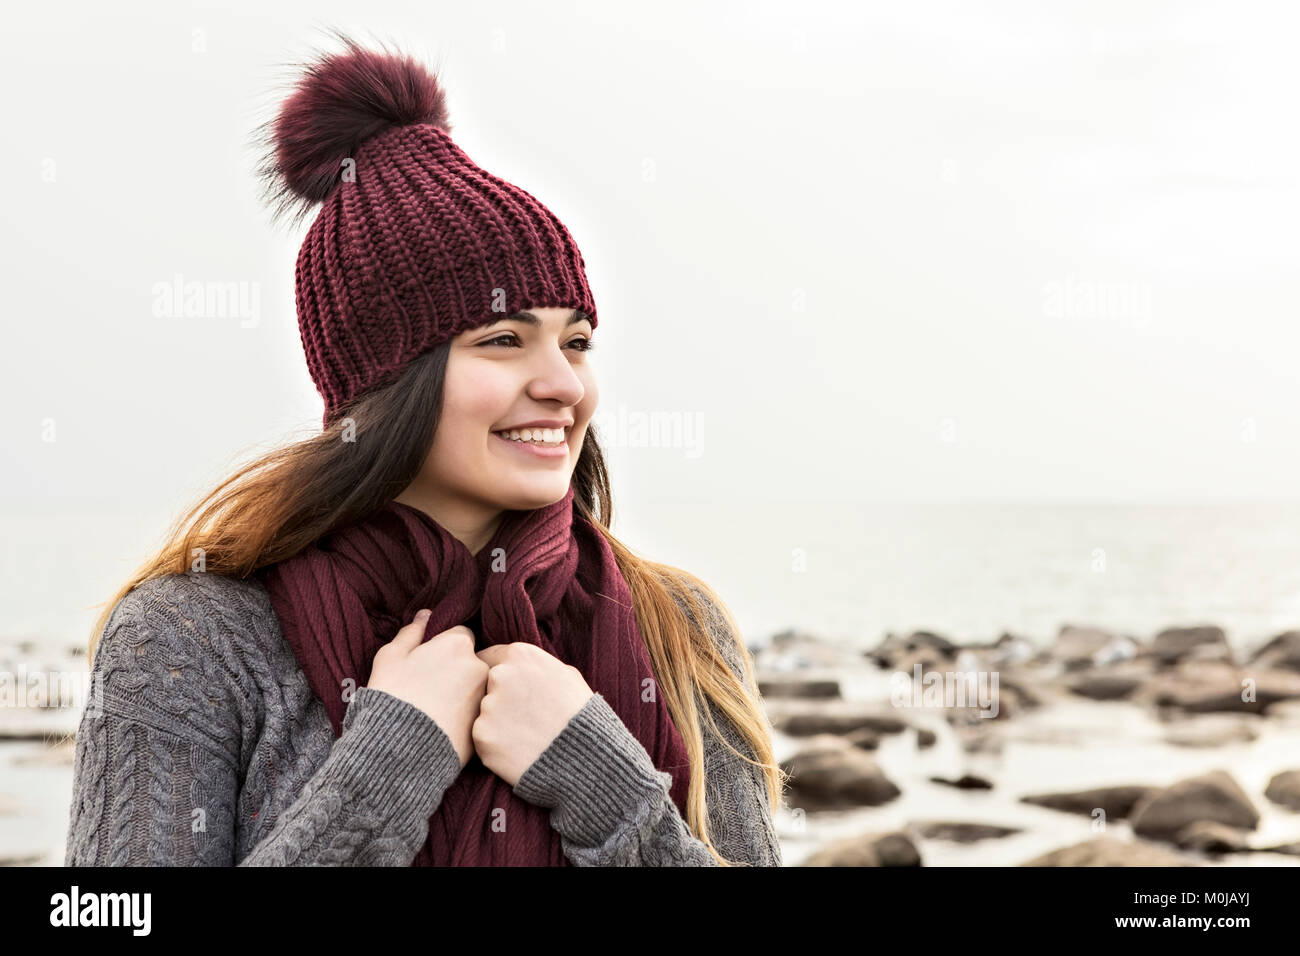 Girl standing on a beach in autumn wearing a knit hat and scarf, Woodbine Beach; Toronto, Ontario, Canada - Stock Image